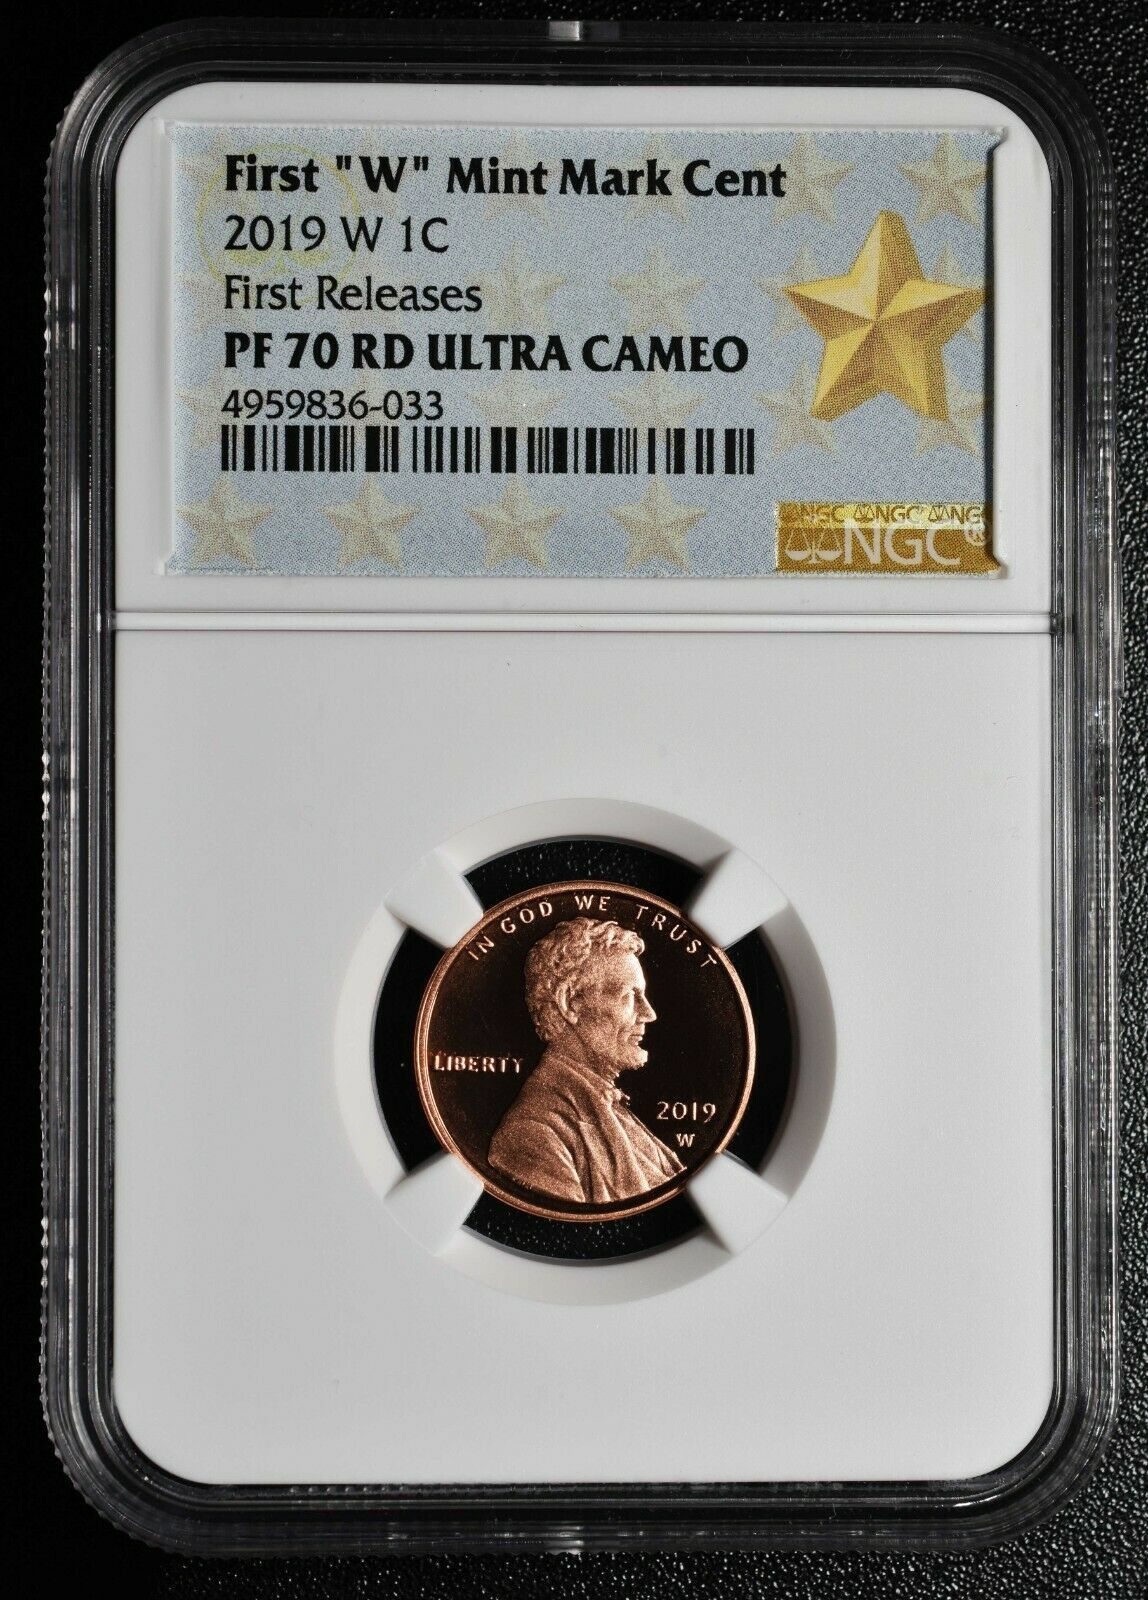 2019 W Lincoln Cent Proof NGC PF70 RD First Releases Coin 4959836-033 SKU C15